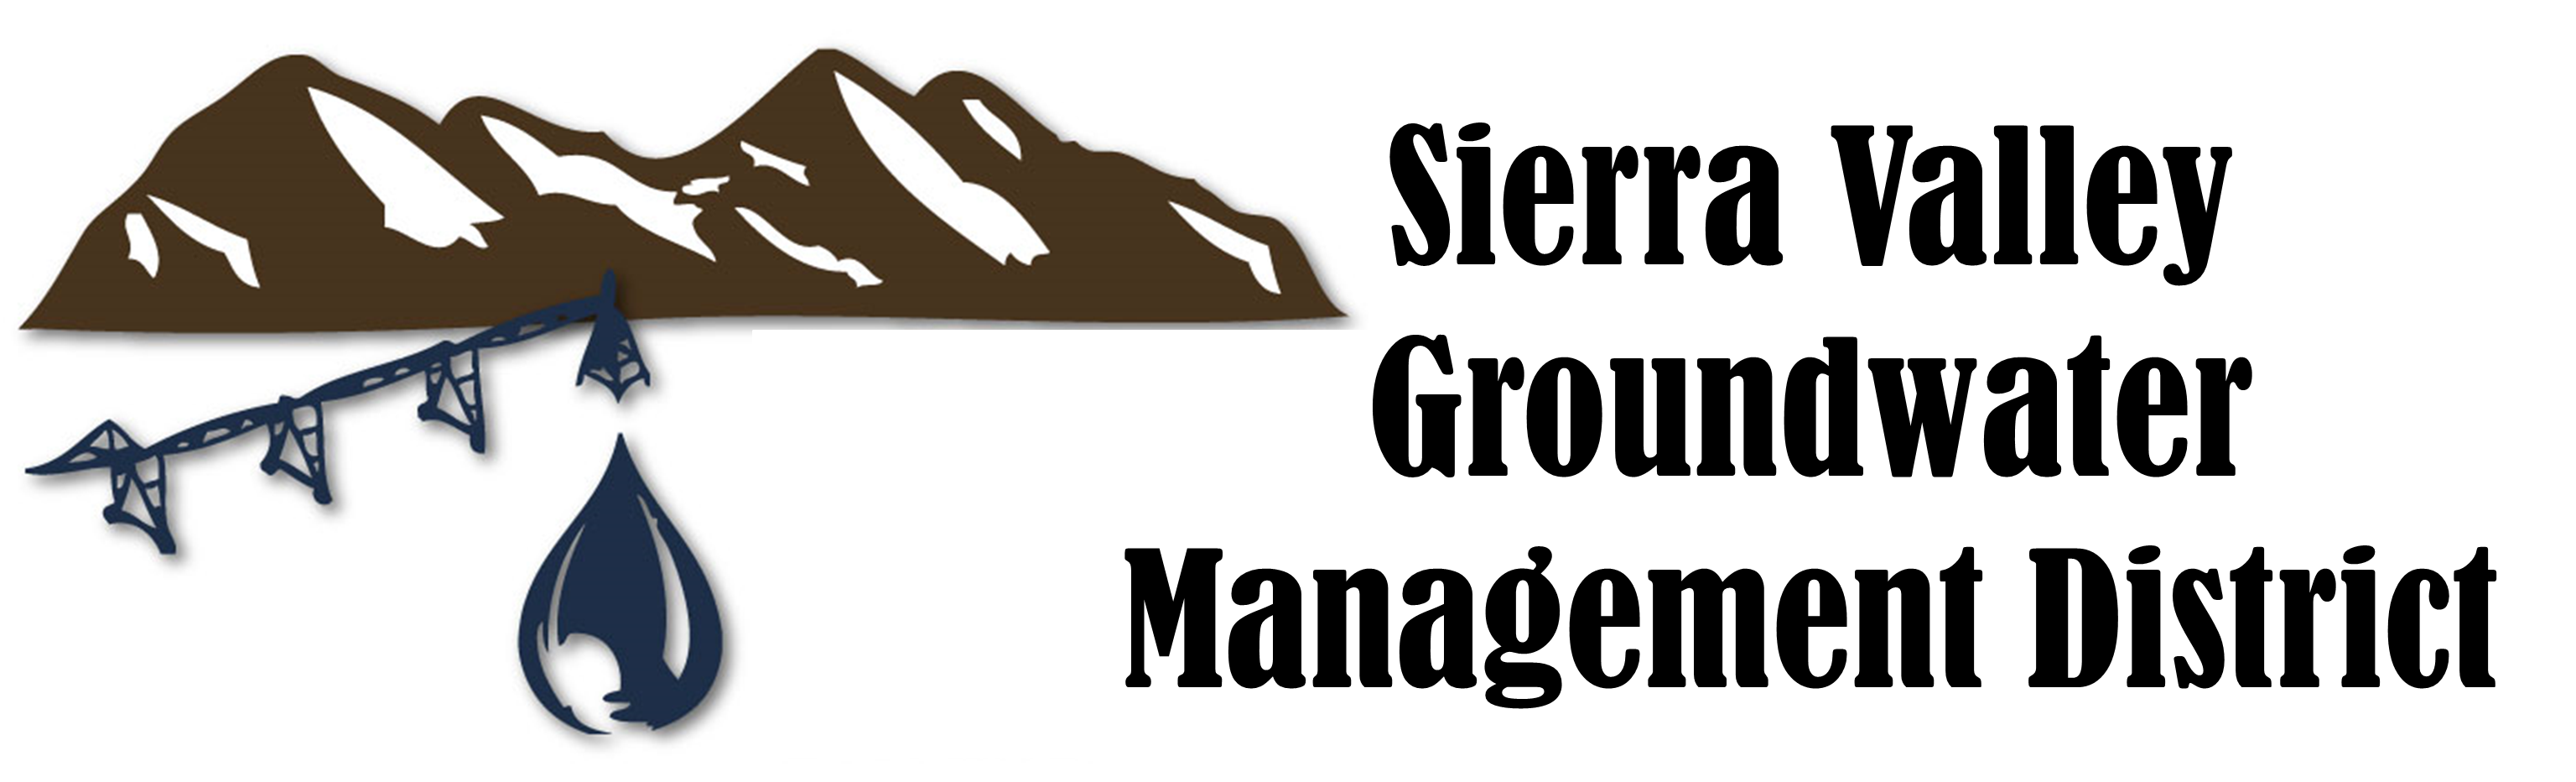 Sierra Valley Groundwater Management District